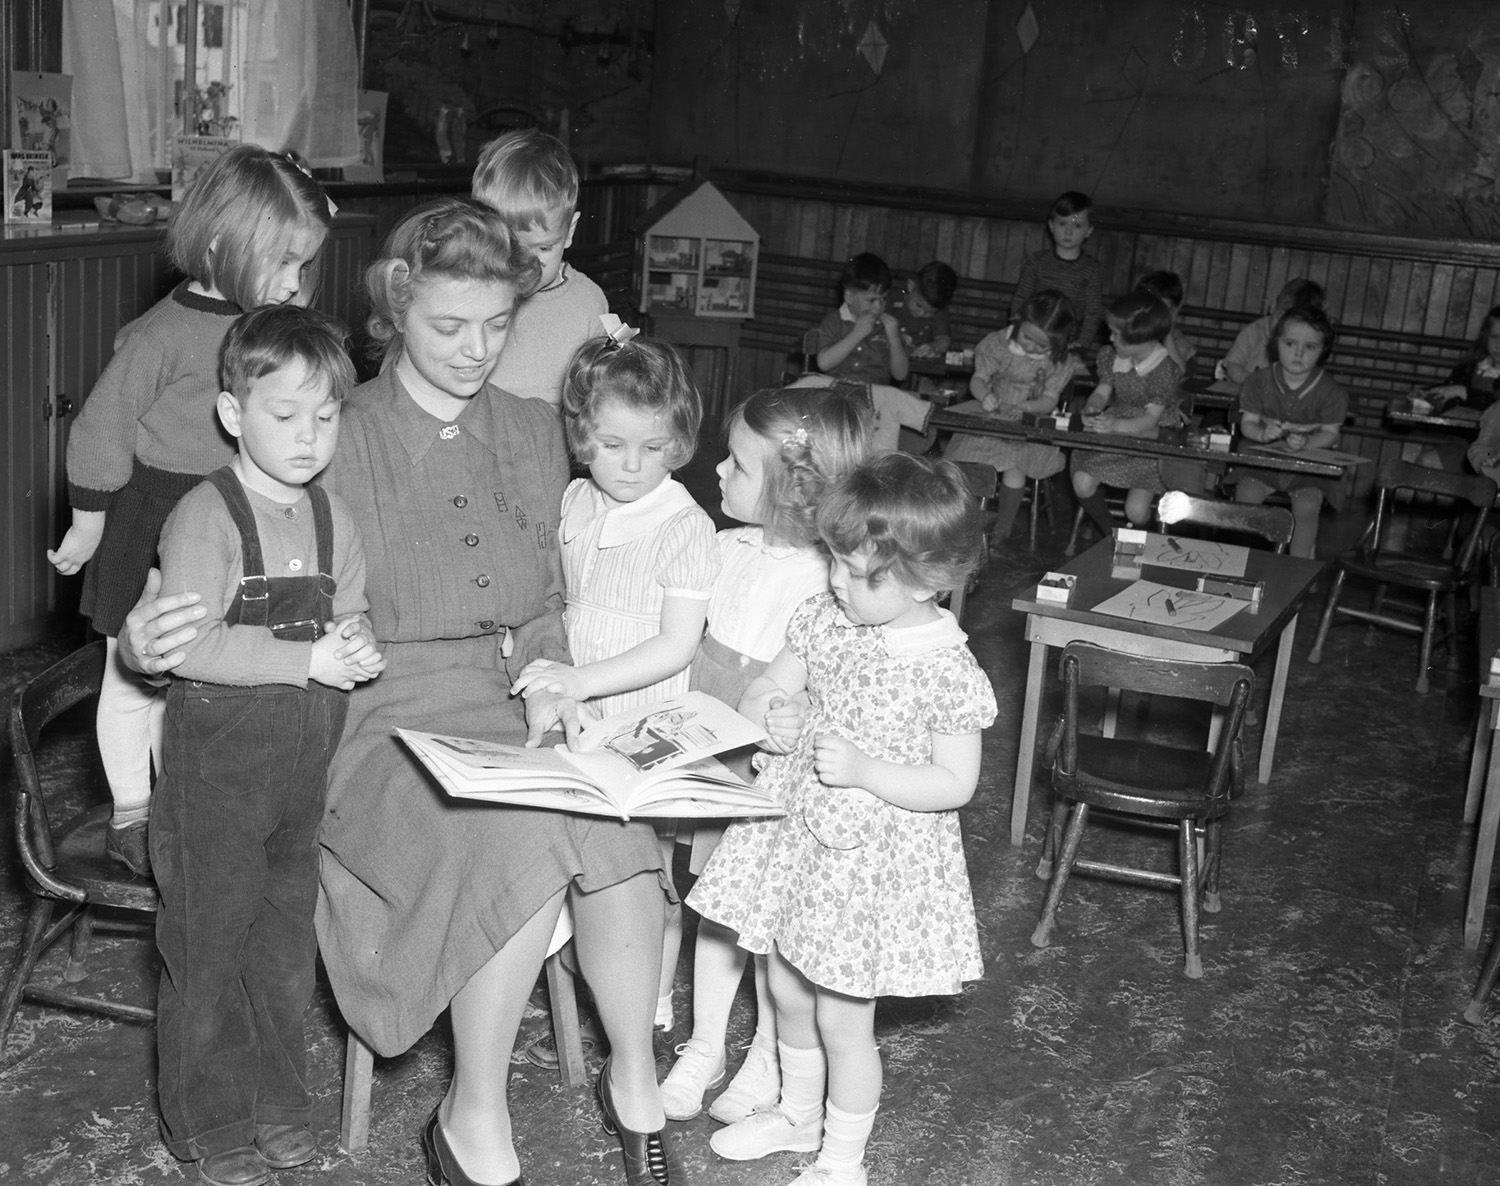 Teacher Ruth Davis reading to children in classroom, March 18, 1941. From the Portland Public Library archival collection of Portland Press Herald, Maine Sunday Telegram and Evening Express photos.